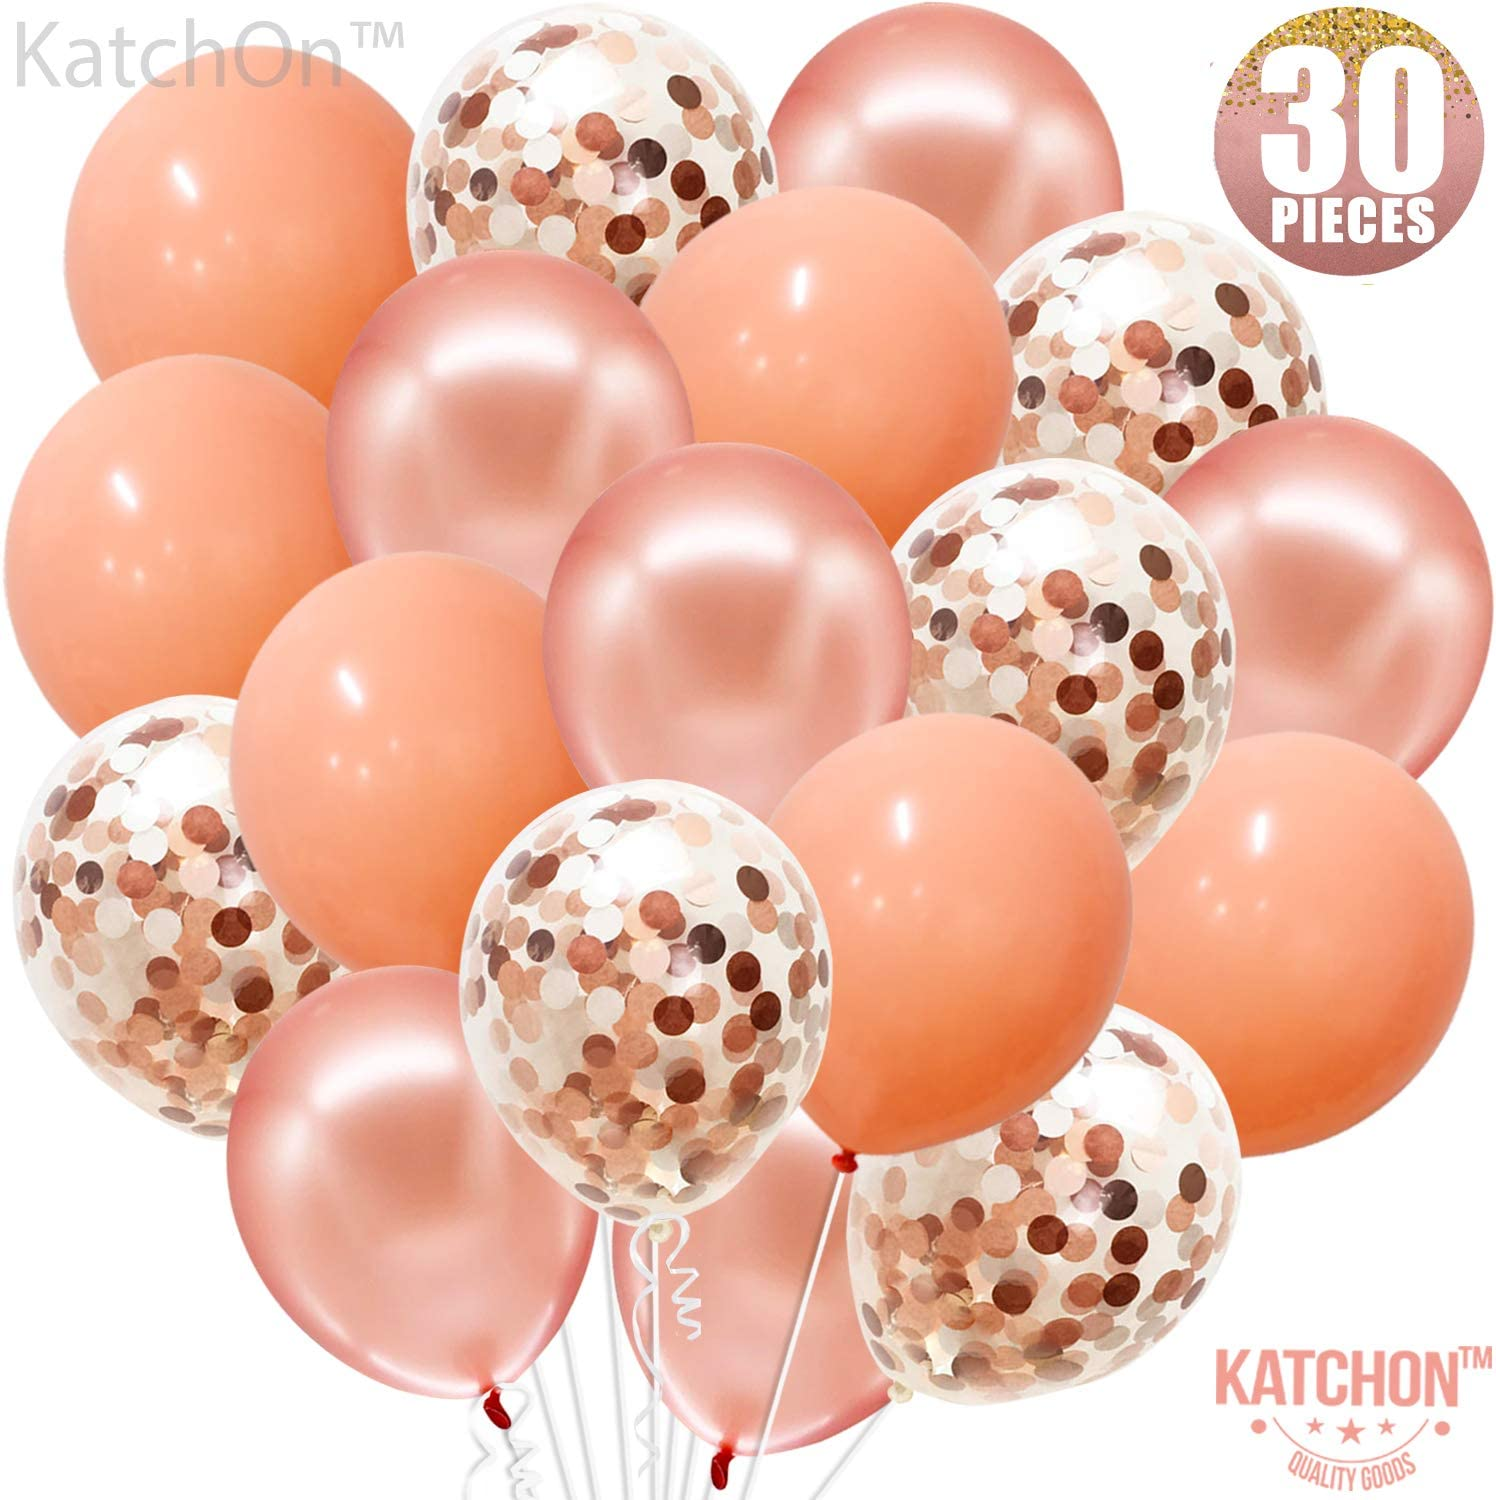 Amazon Com Rose Gold Confetti And Blush Pink Balloons Pack Of 30 Great For Bridal Shower Decorations Birthday Bridal Shower Balloons Pre Filled Rose Gold Confetti Metallic Balloons 3 Style 12